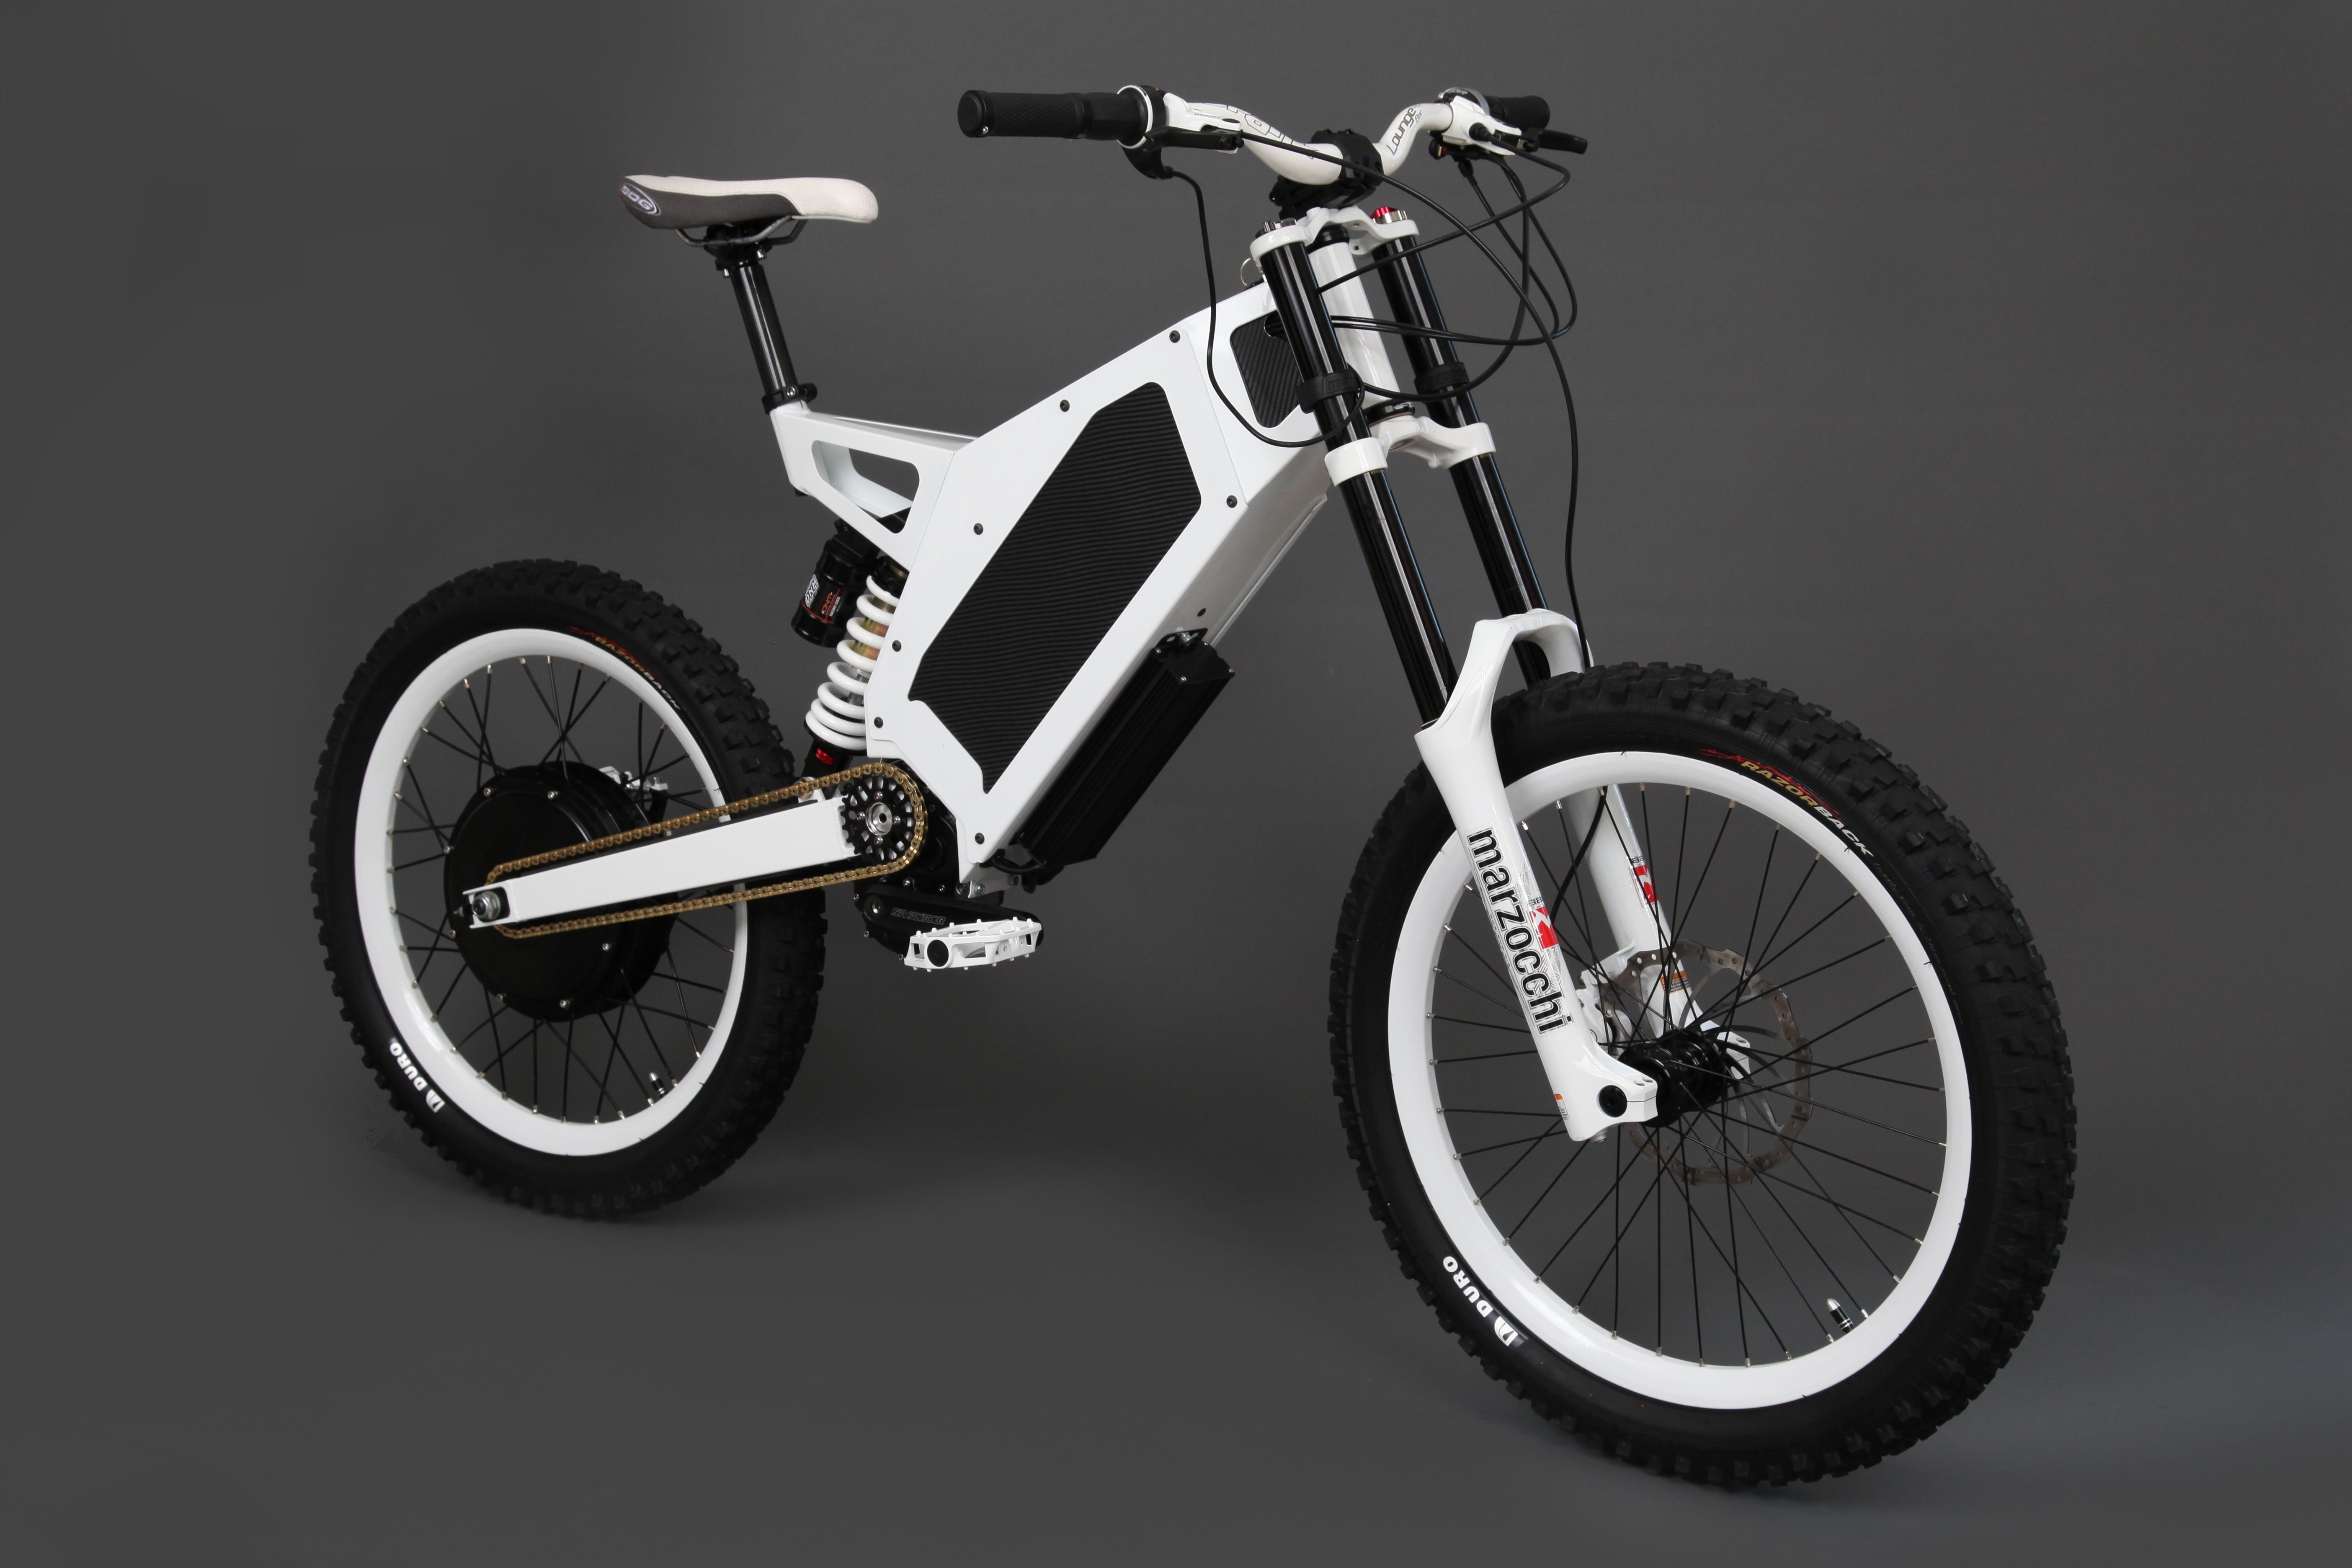 Stealth Bomber Electric Bike Bicycles for sale, Electric